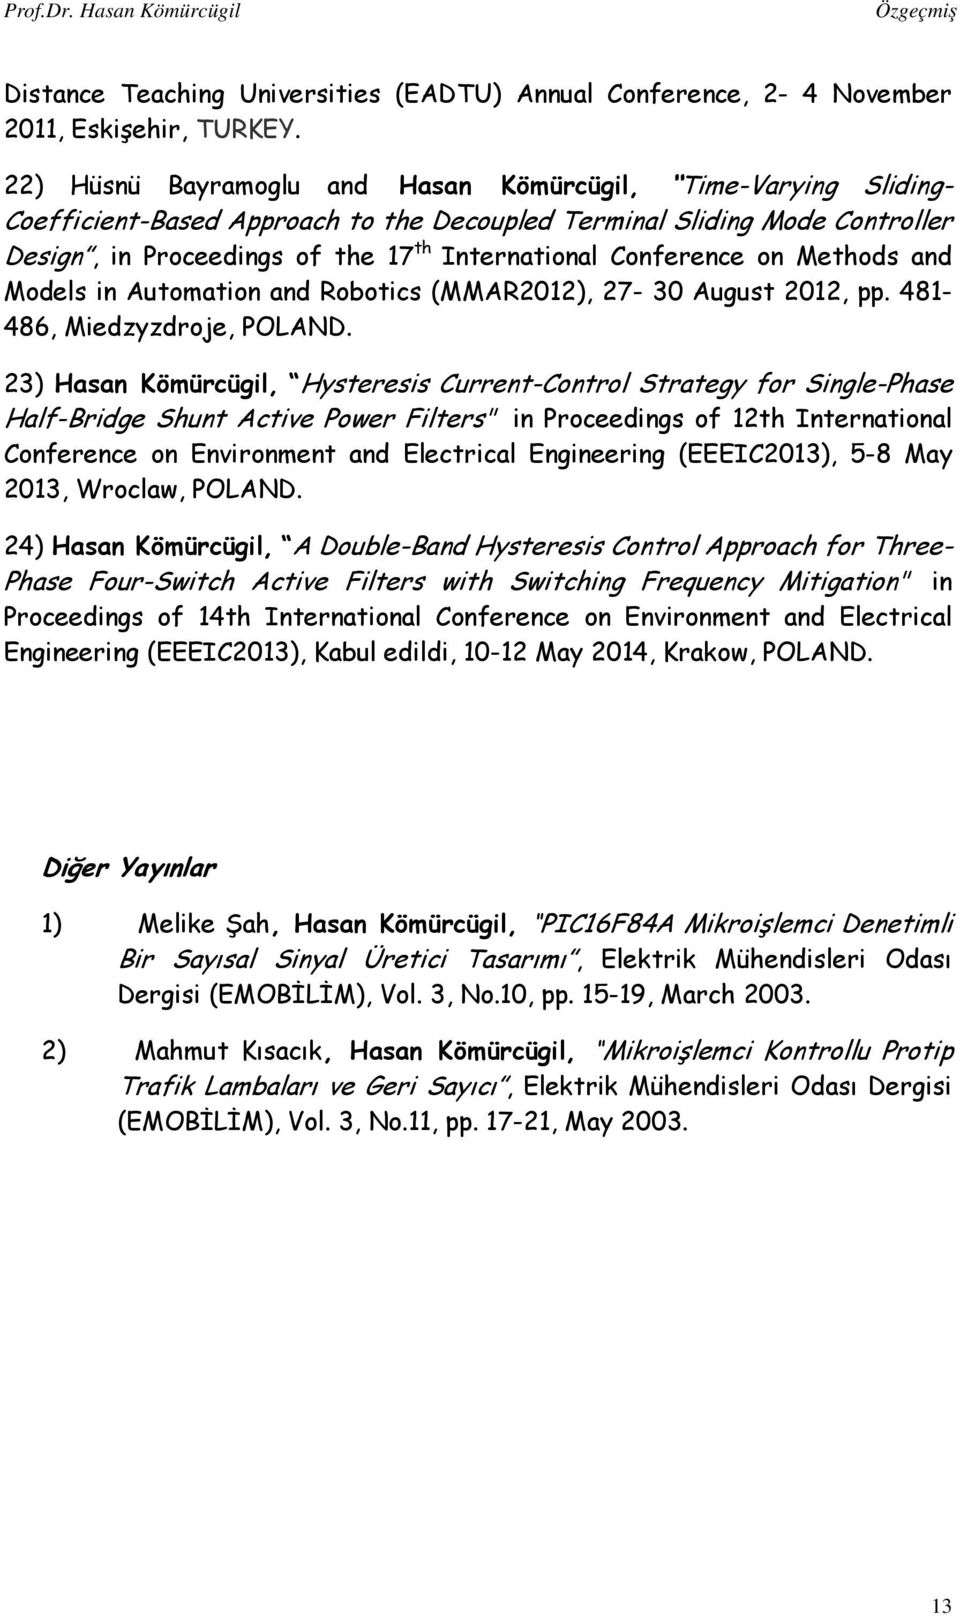 Conference on Methods and Models in Automation and Robotics (MMAR2012), 27-30 August 2012, pp. 481-486, Miedzyzdroje, POLAND.